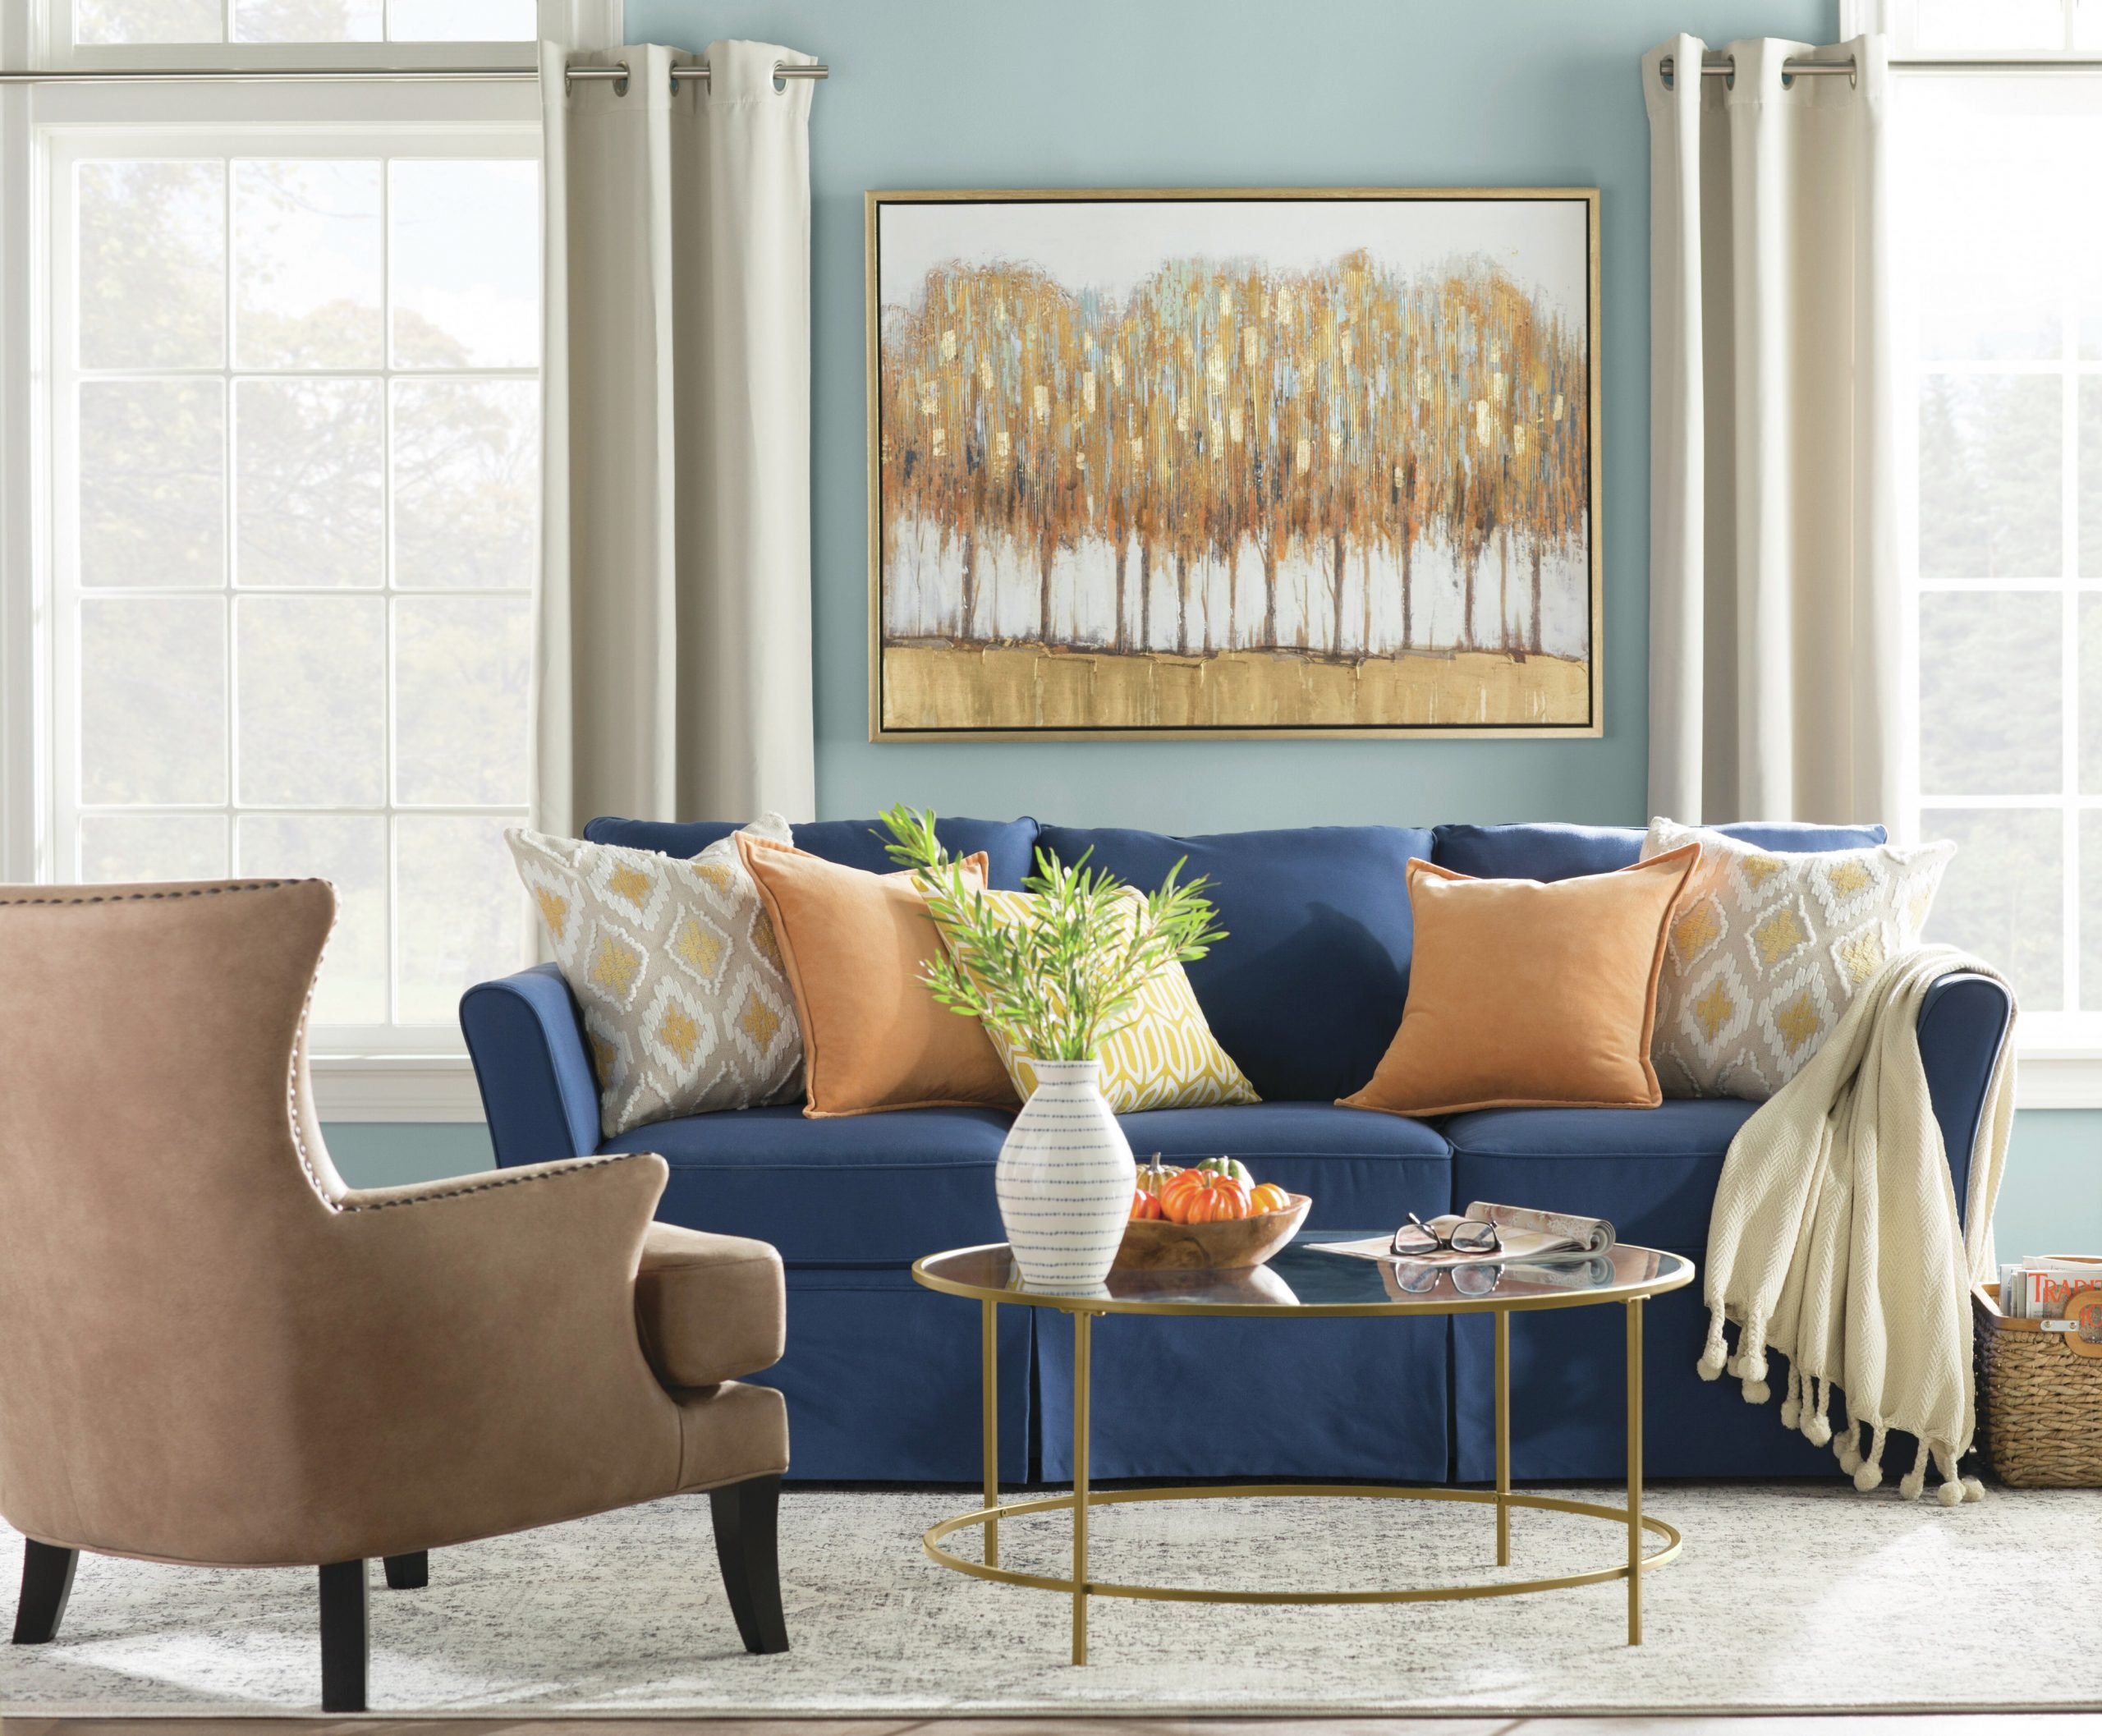 Window Treatments 101: Drapes Vs. Curtains | Wayfair with regard to Living Room Curtains And Drapes